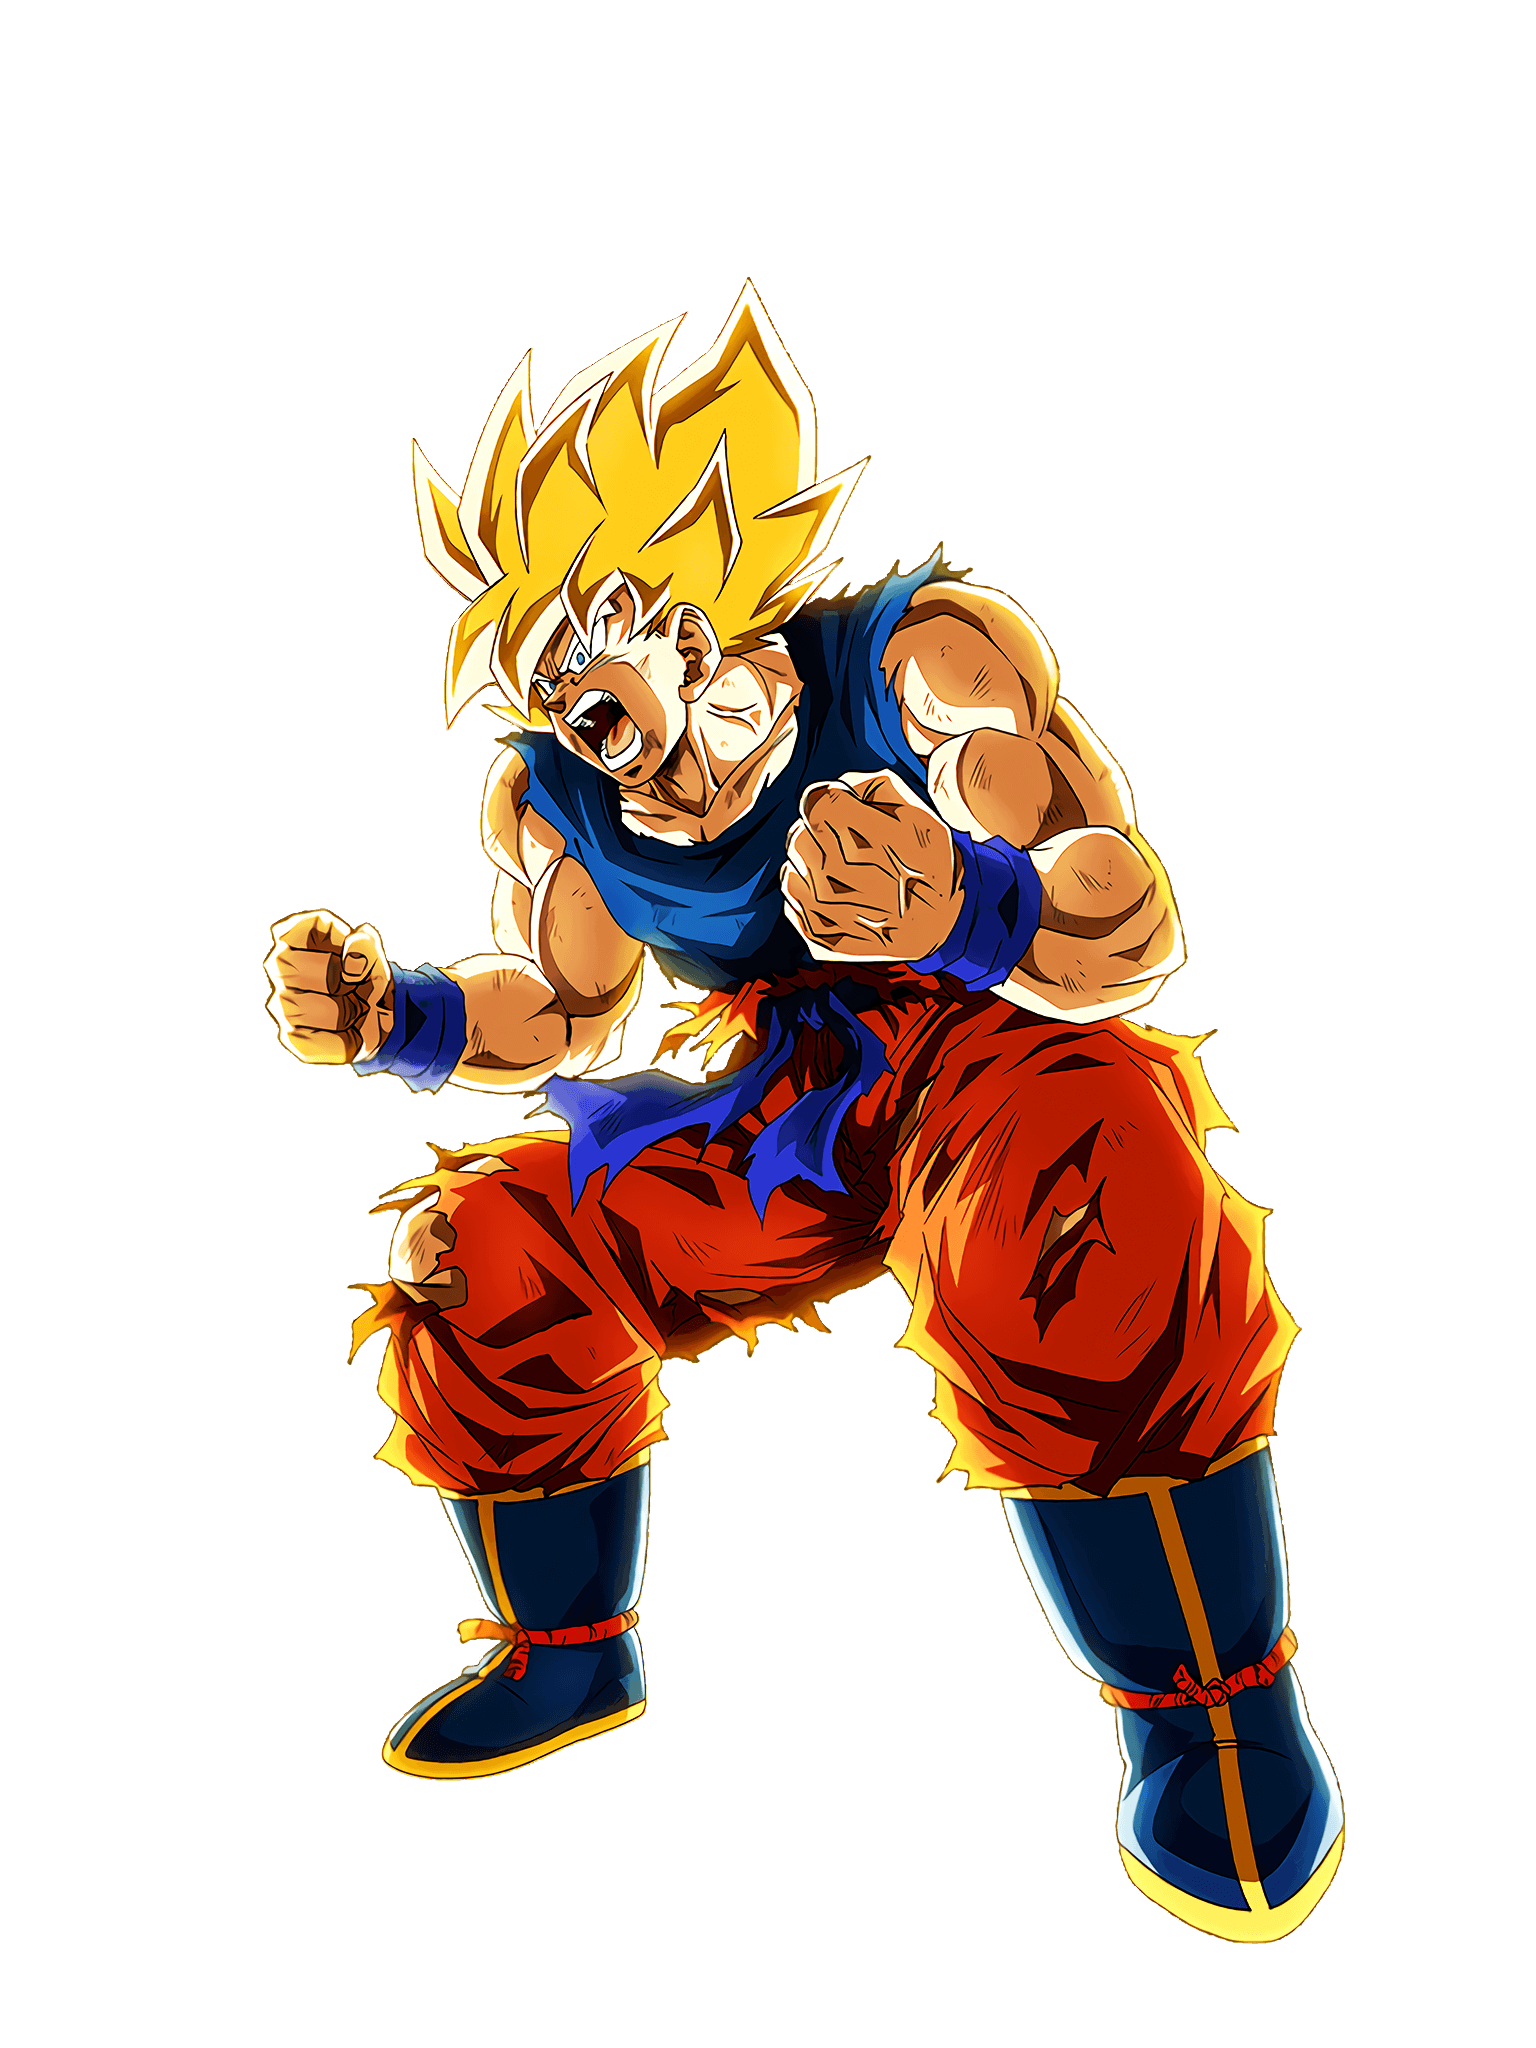 Extreme Rage Super Saiyan Goku Rage Mode Render (Dragon Ball Z Dokkan Battle) .png